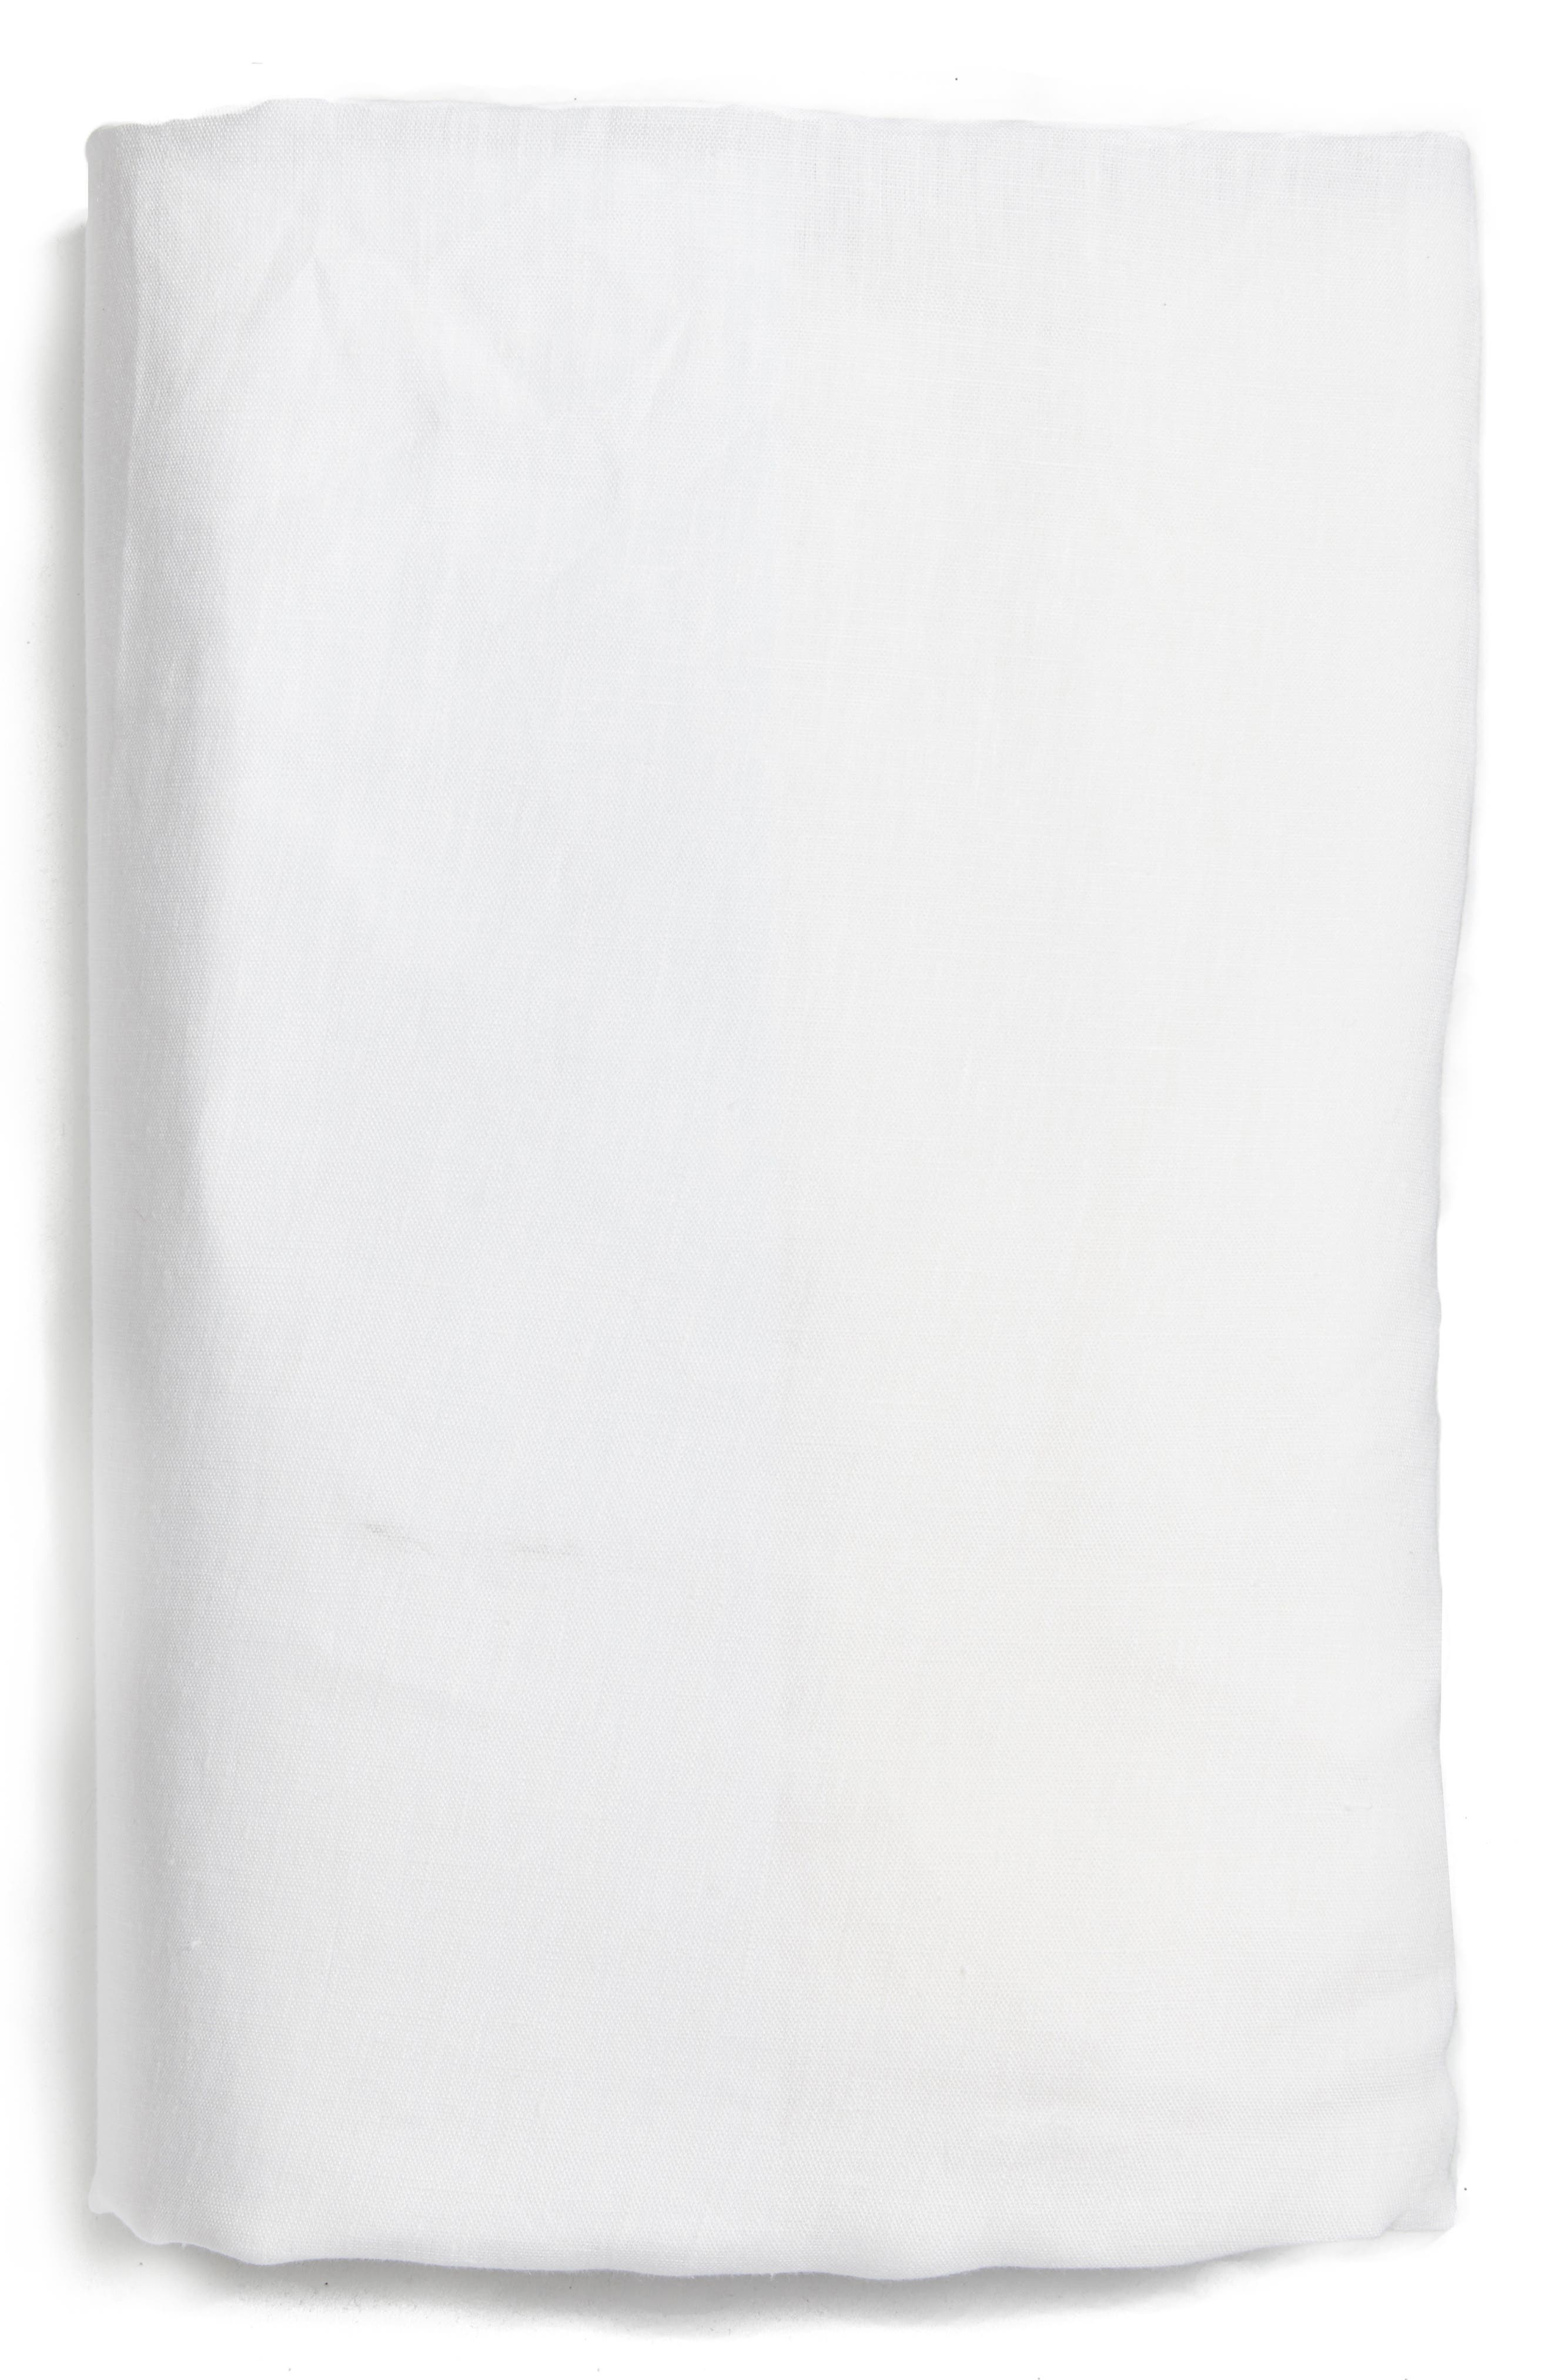 Main Image - Calvin Klein Home Solo Linen Fitted Sheet